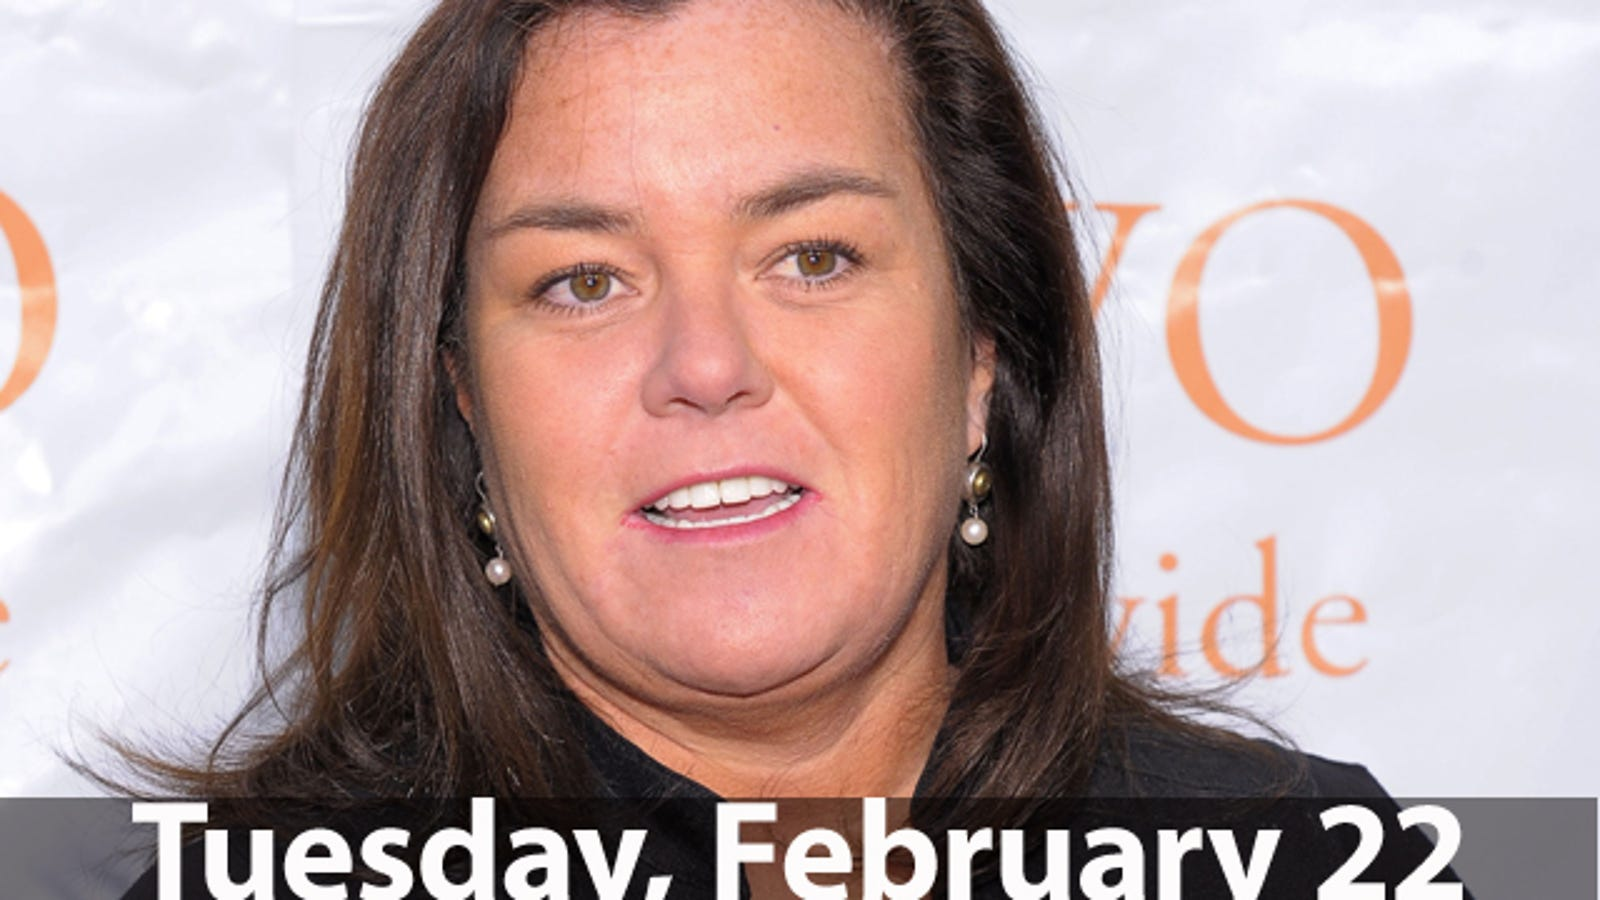 Rosie Odonnell Ladyfriend Split Up Leaving Kids Sad